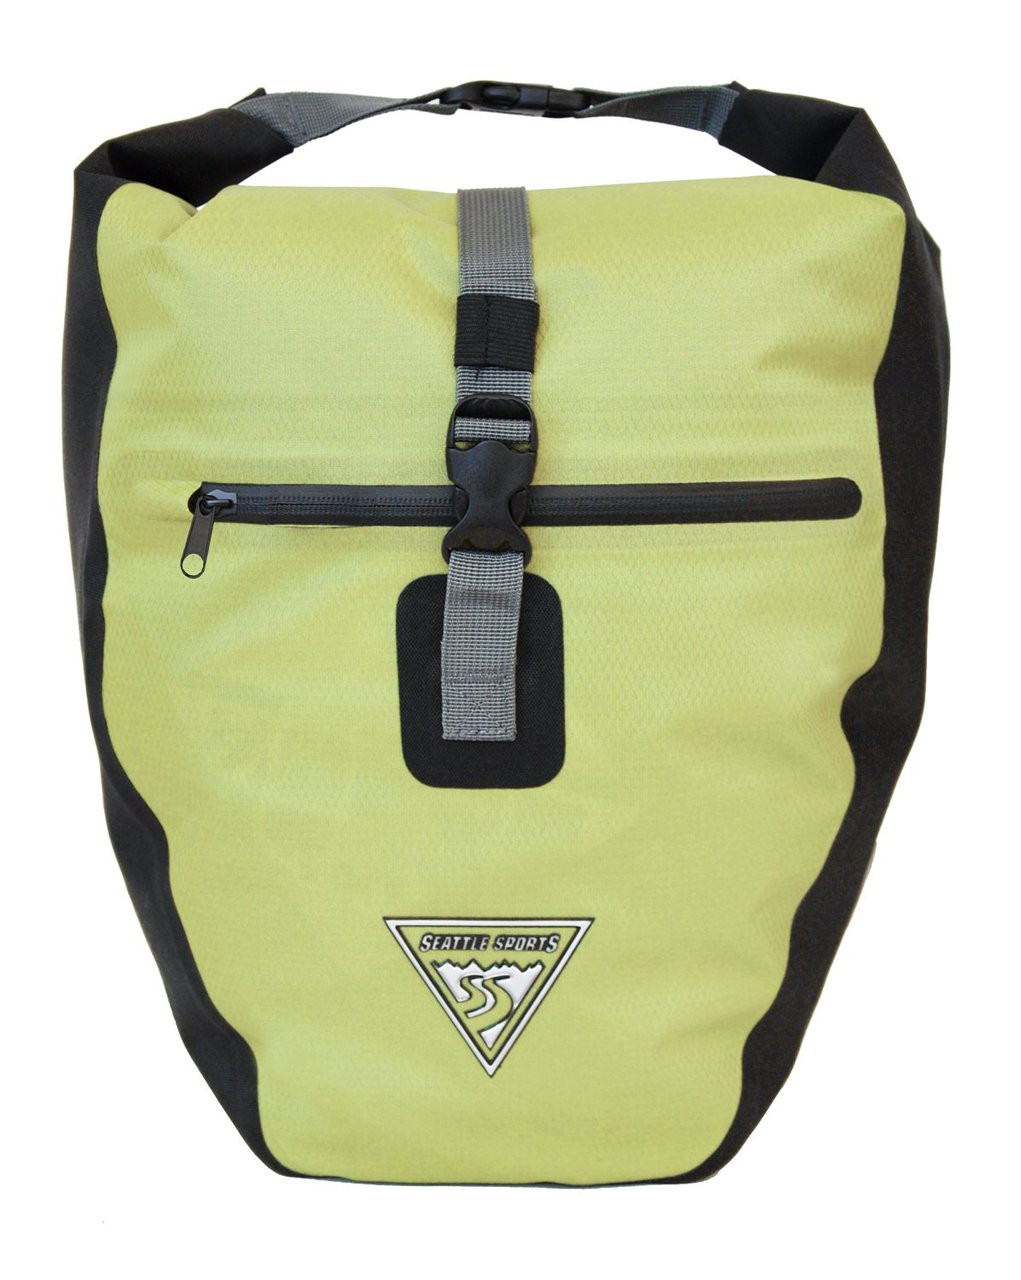 splashproof bike bag